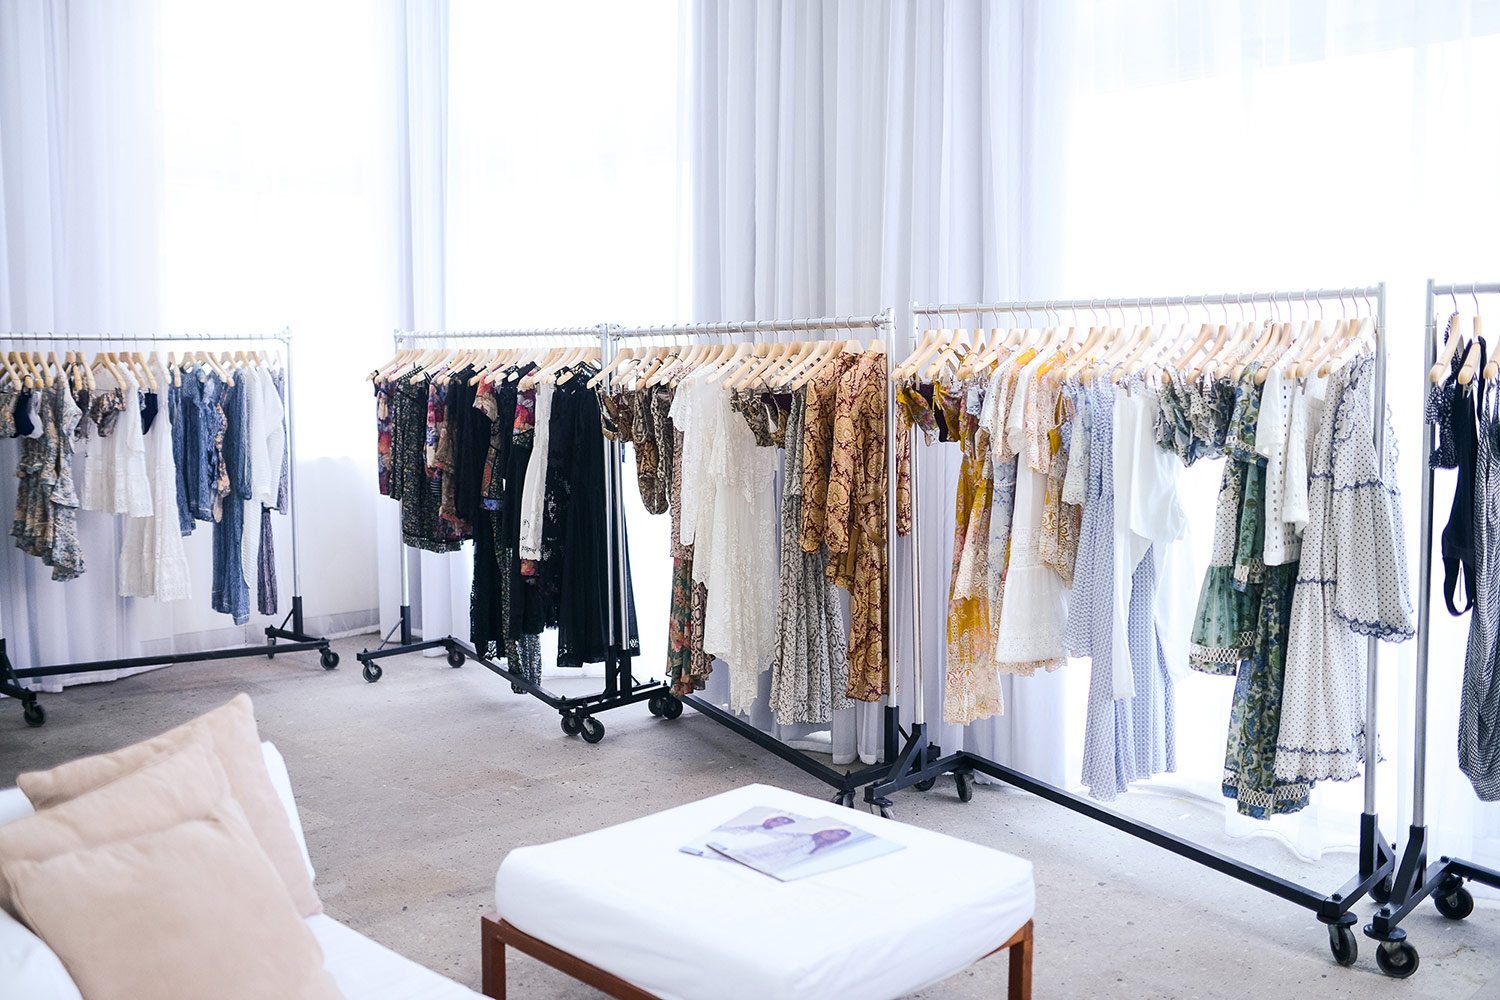 Racks of clothes are placed around the boarder of our bright white showroom at the Shore Club